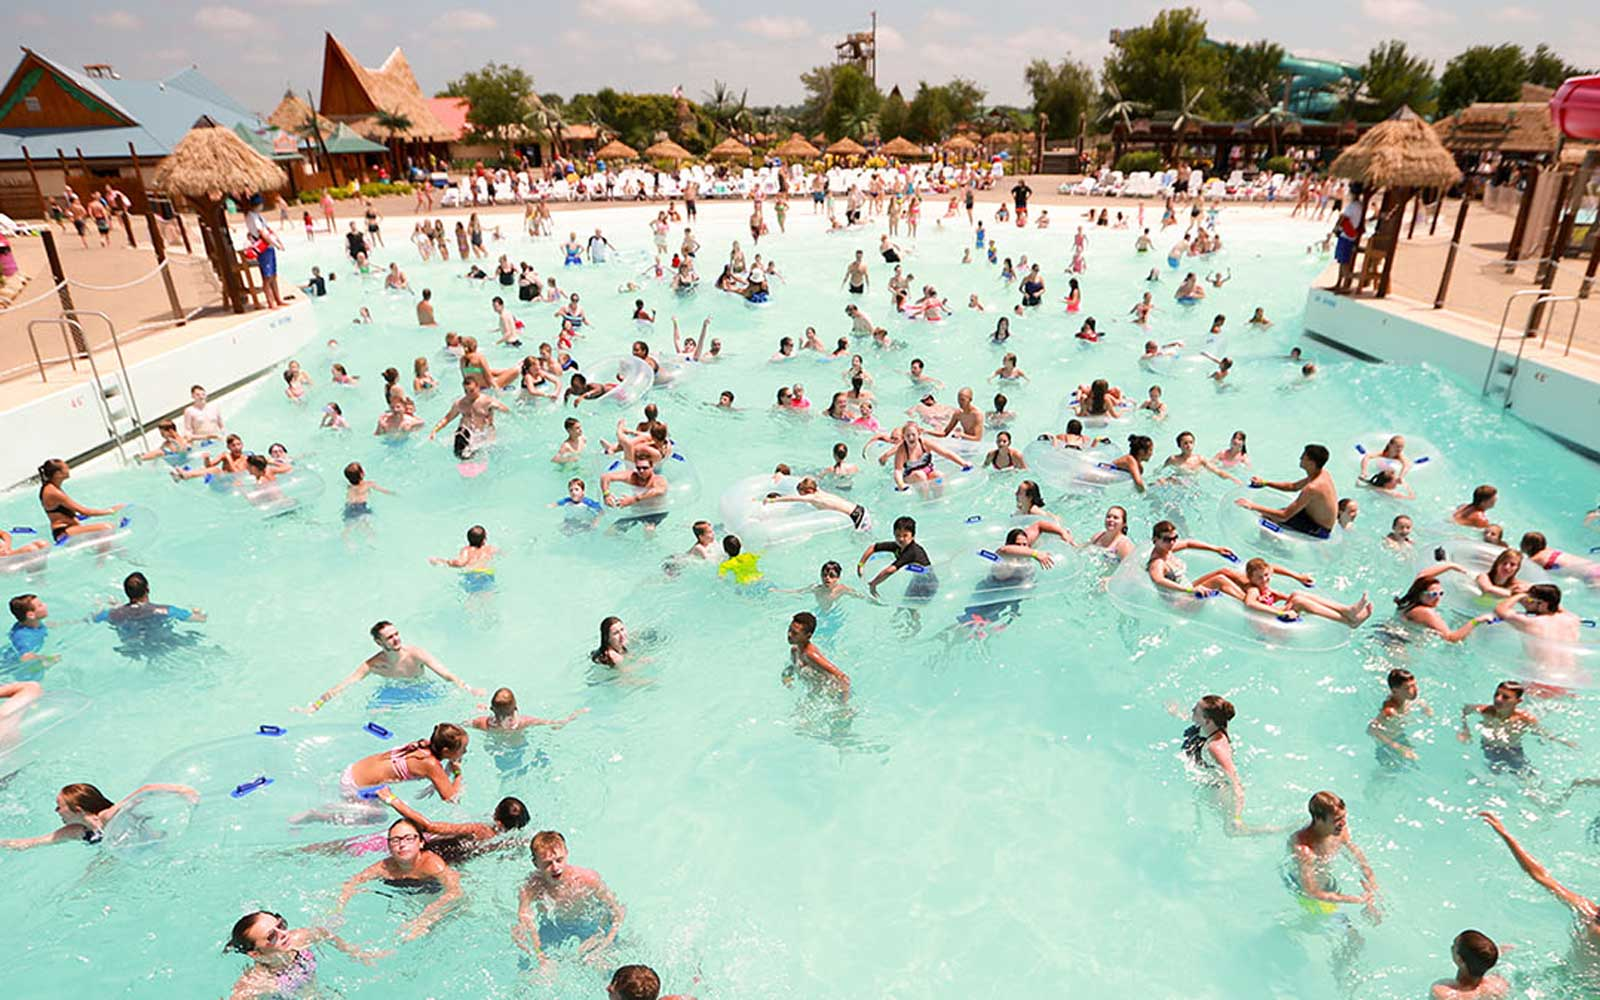 The waterparks you'll want to cool off at this summer